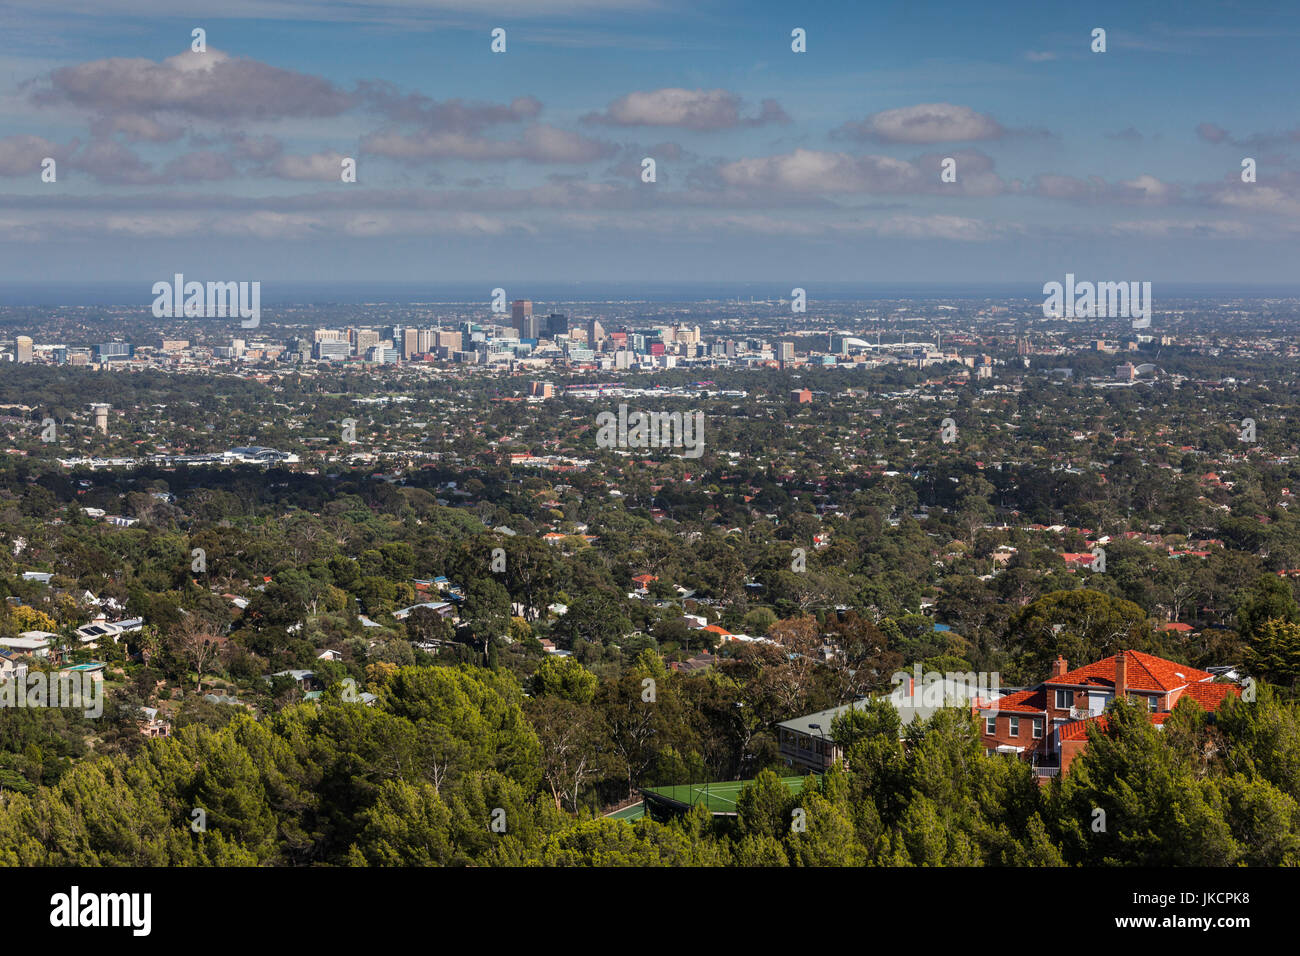 Australia, South Australia, Adelaide Hills, Crafers, elevated skyline of Adelaide from the Mount Lofty Summit - Stock Image